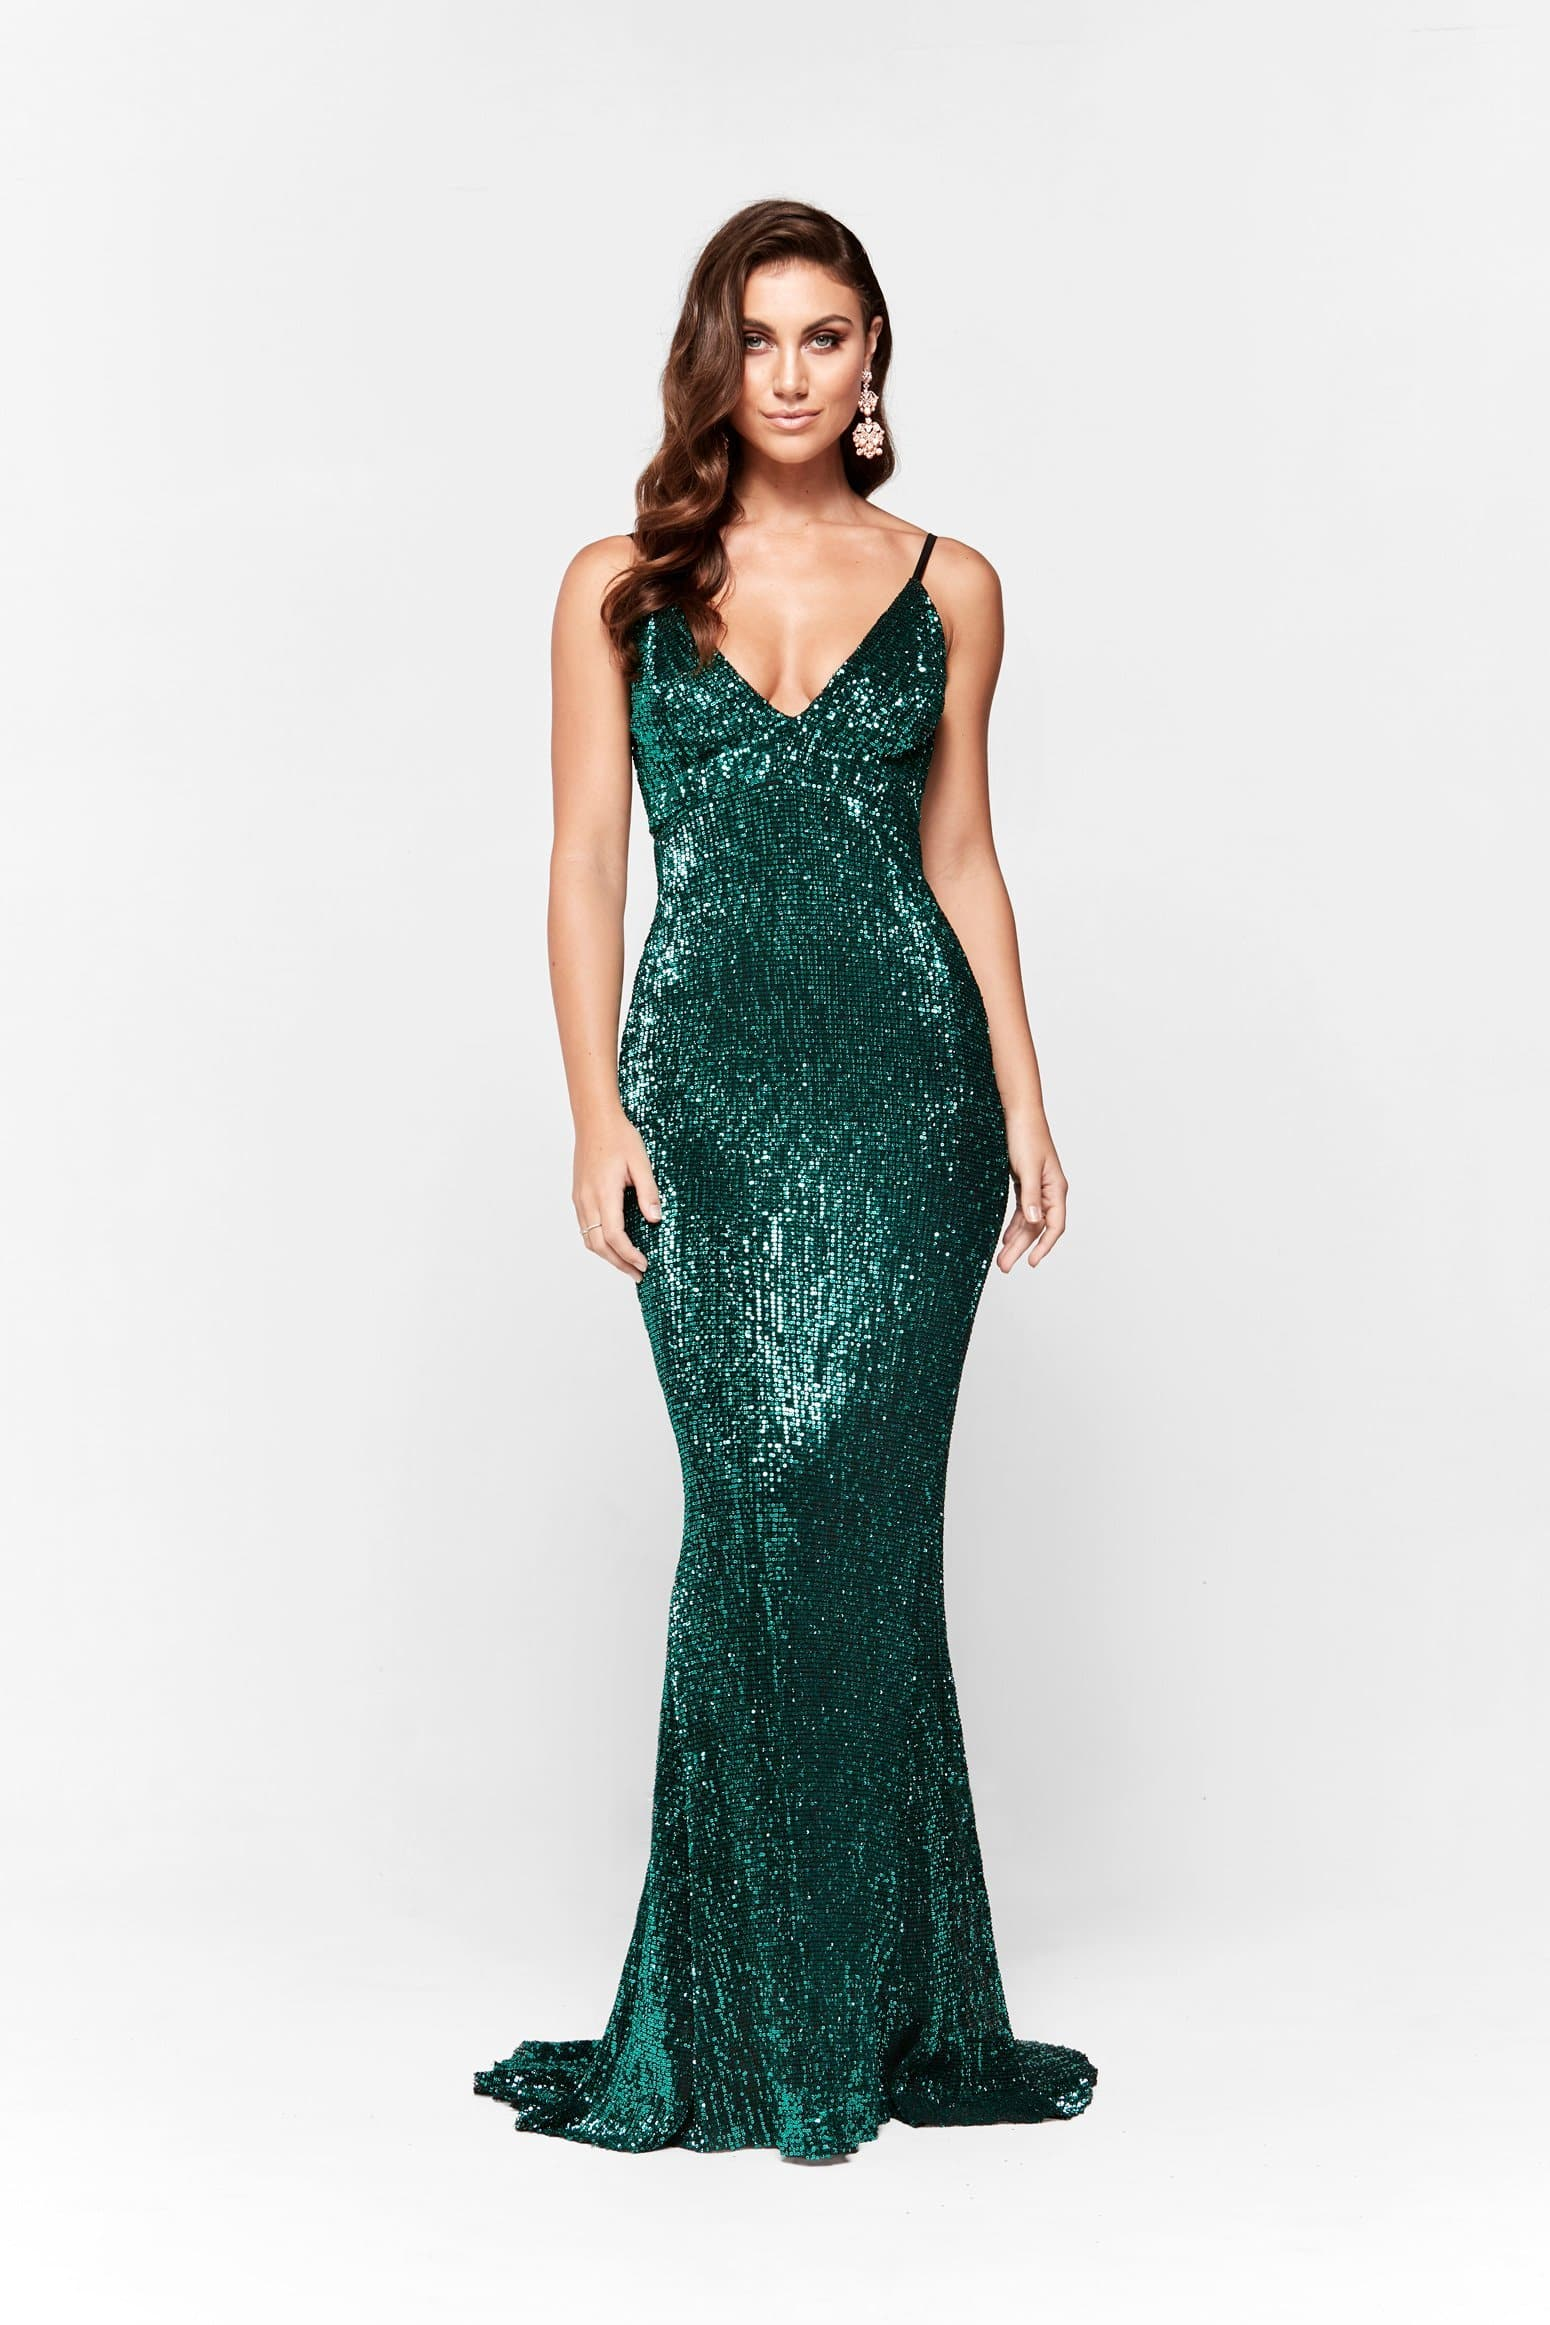 Cynthia Formal Dress -Emerald Sparkling V Neck Low Back Maxi Prom Gown